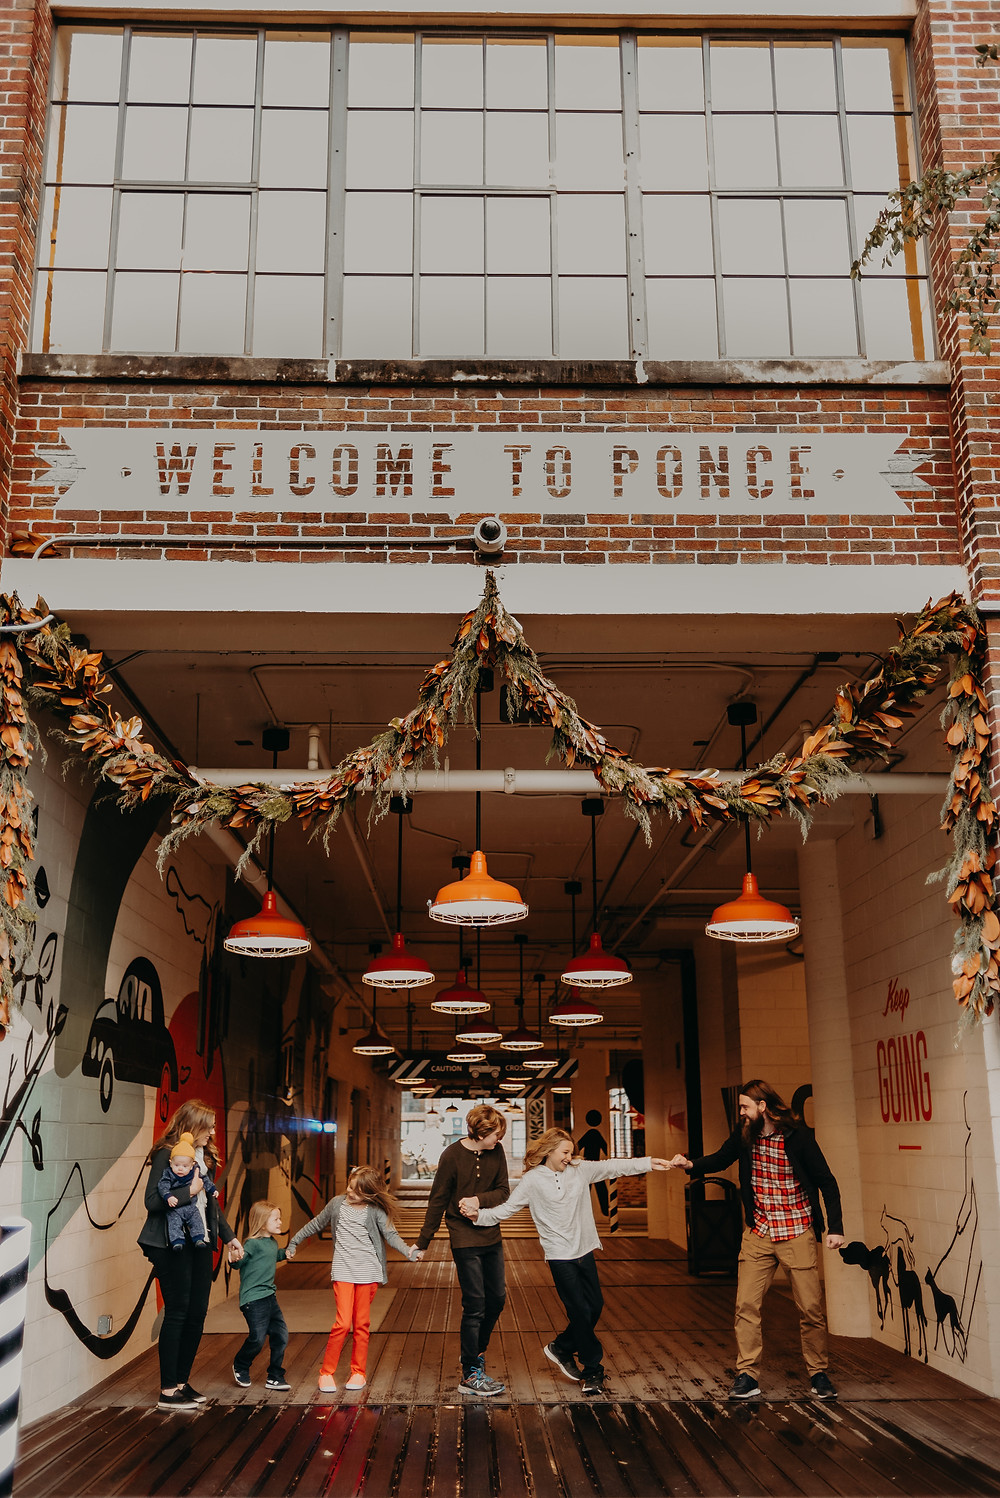 Family of 7 playing at ponce city market ga